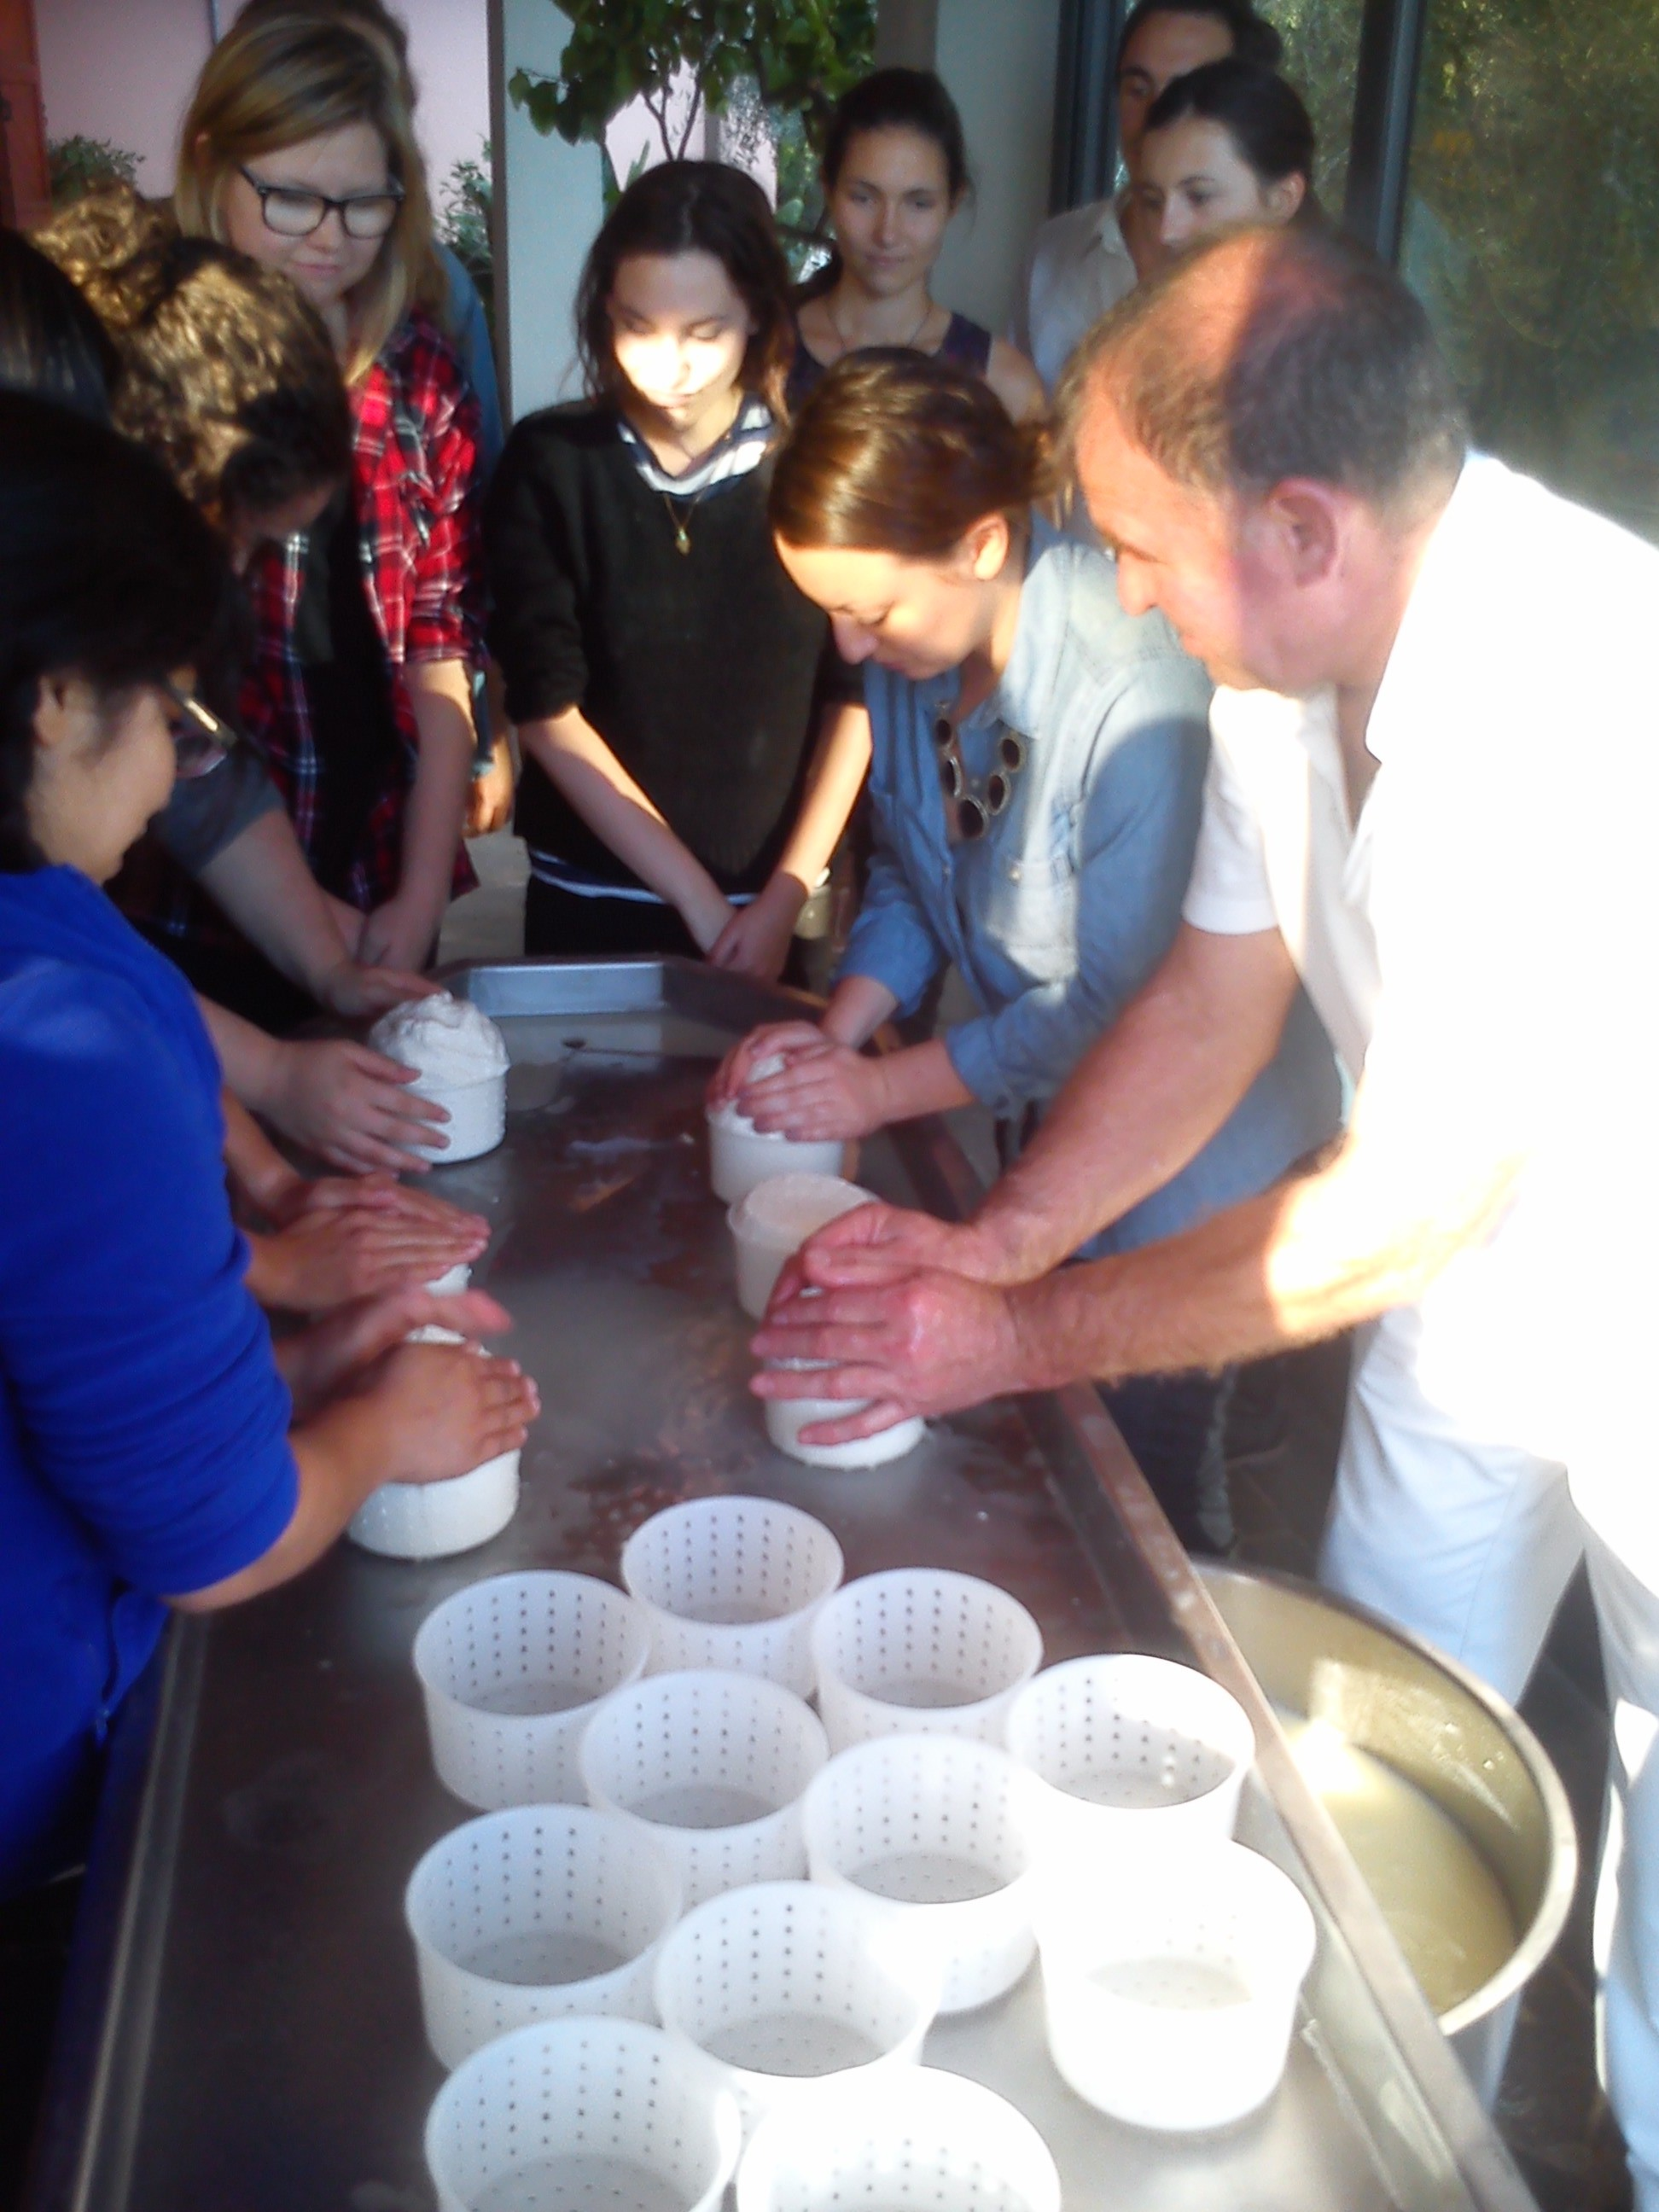 Every student gets a chance to make their own batch of cheese